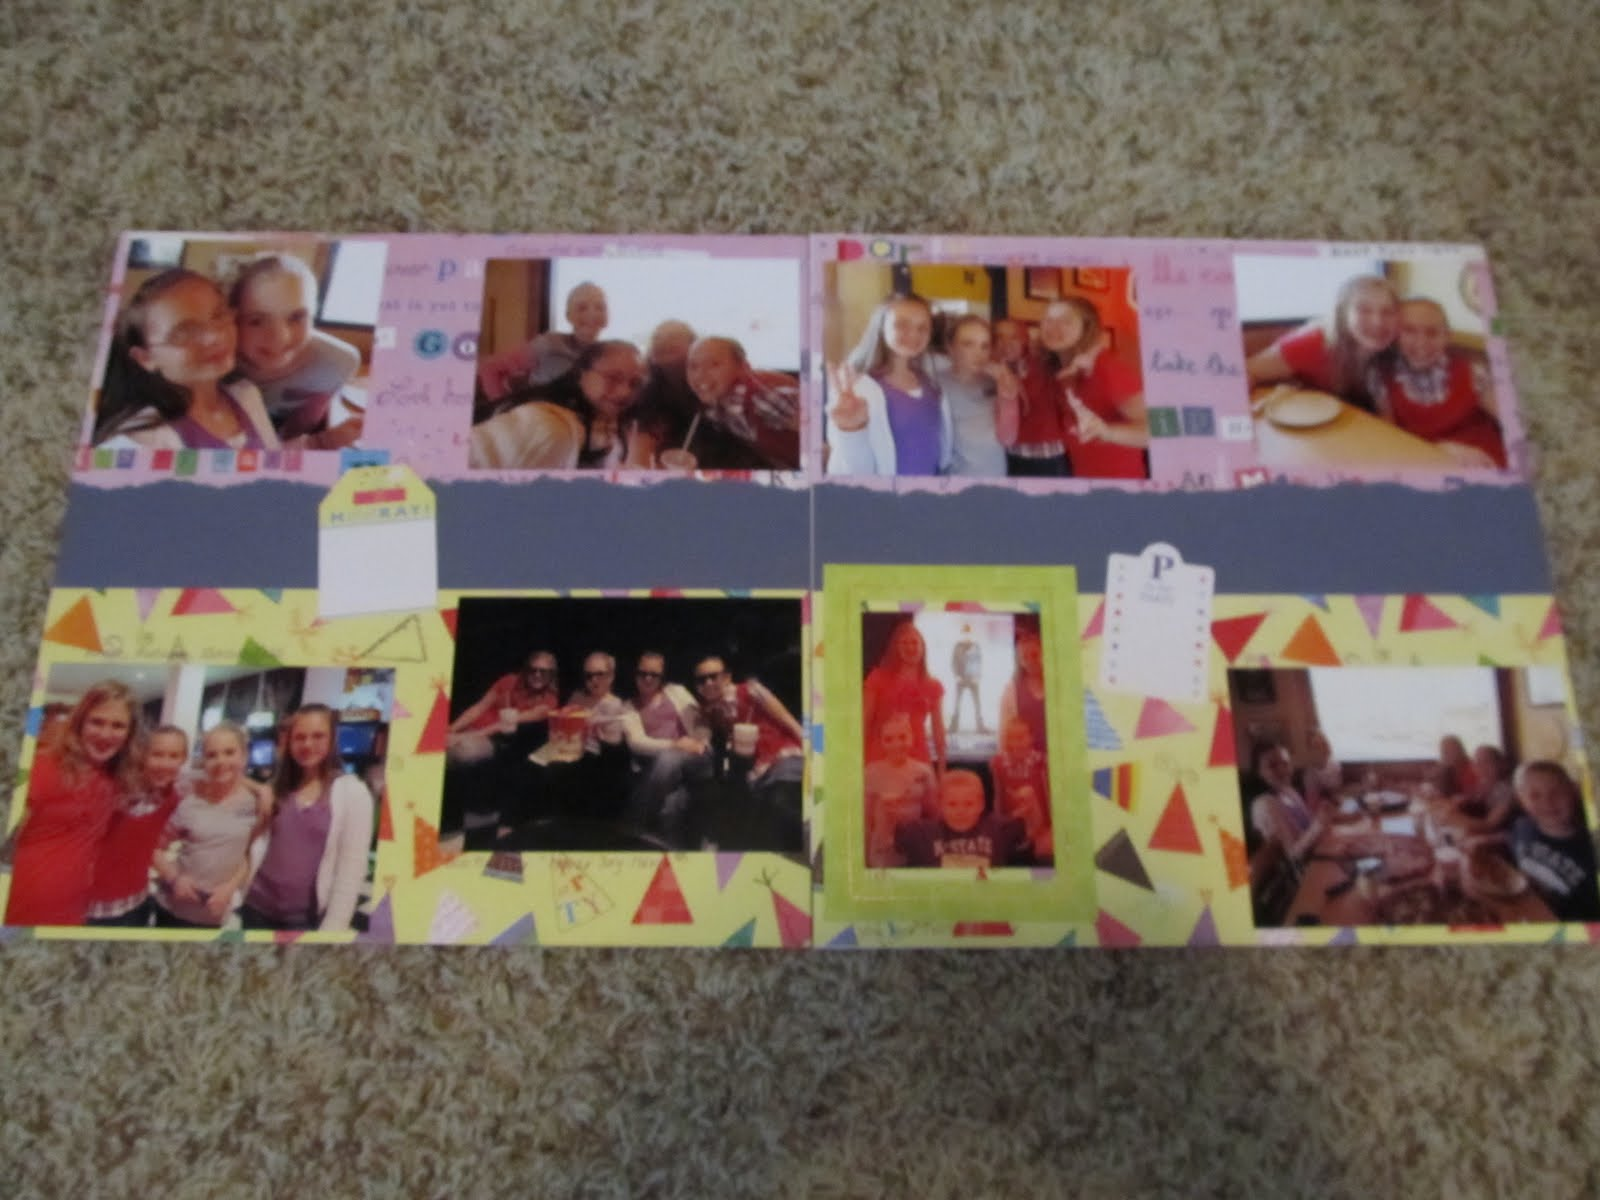 Justin bieber scrapbook ideas - 2nd Page Of This Layout For Her 12th Bday We Started Out W 3 Friends Pizza And Justin Bieber